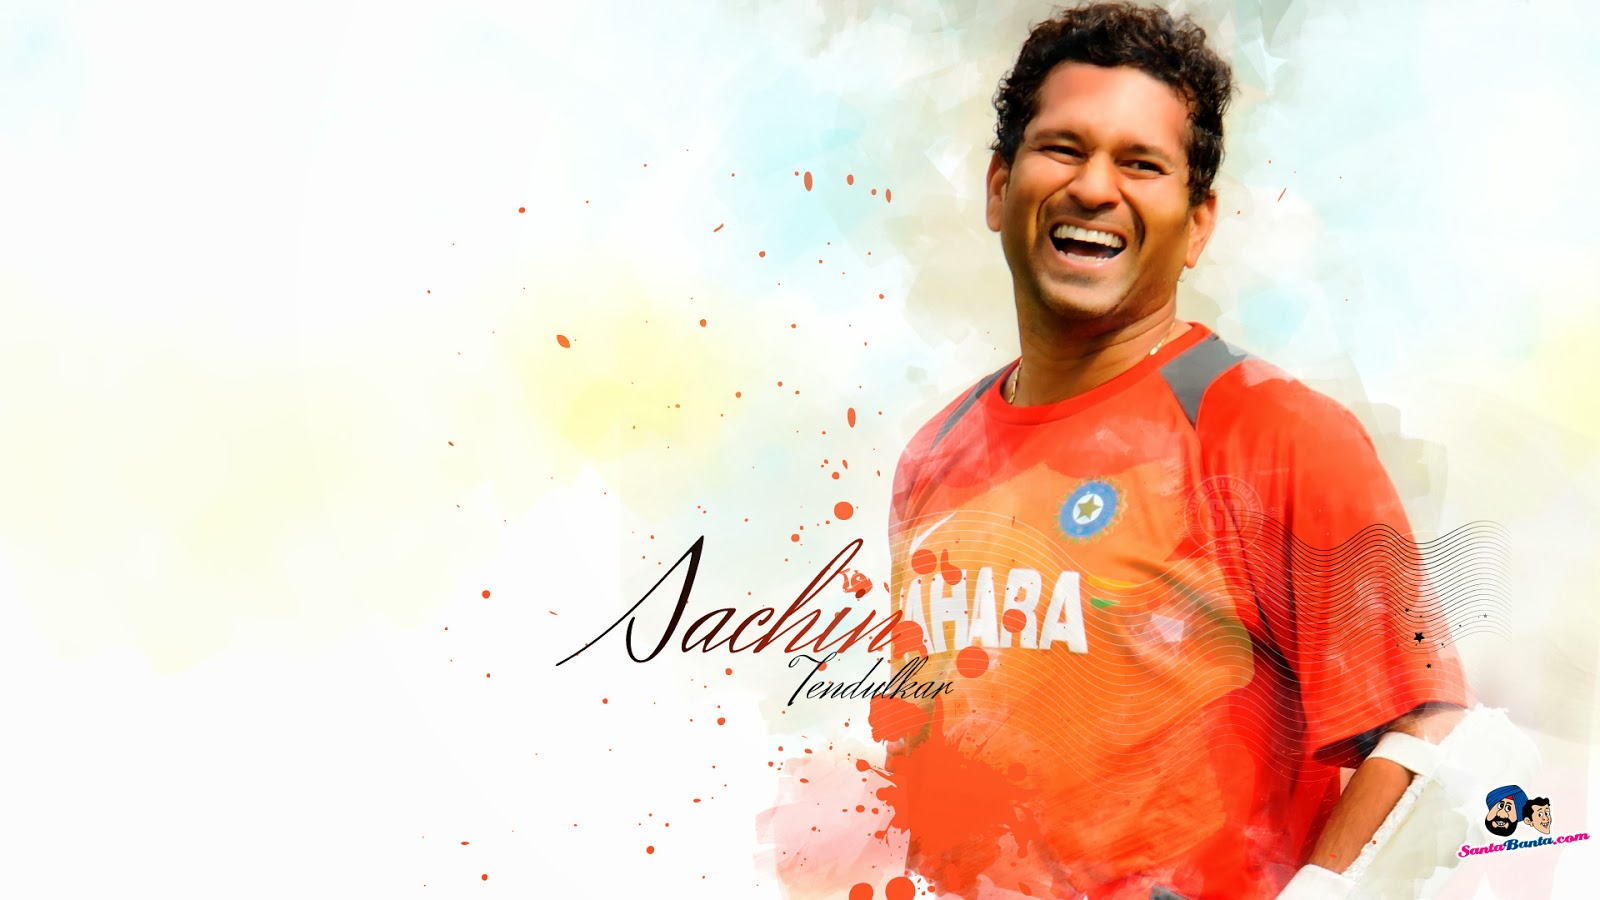 Pencil Drawings of Sachin Tendulkar